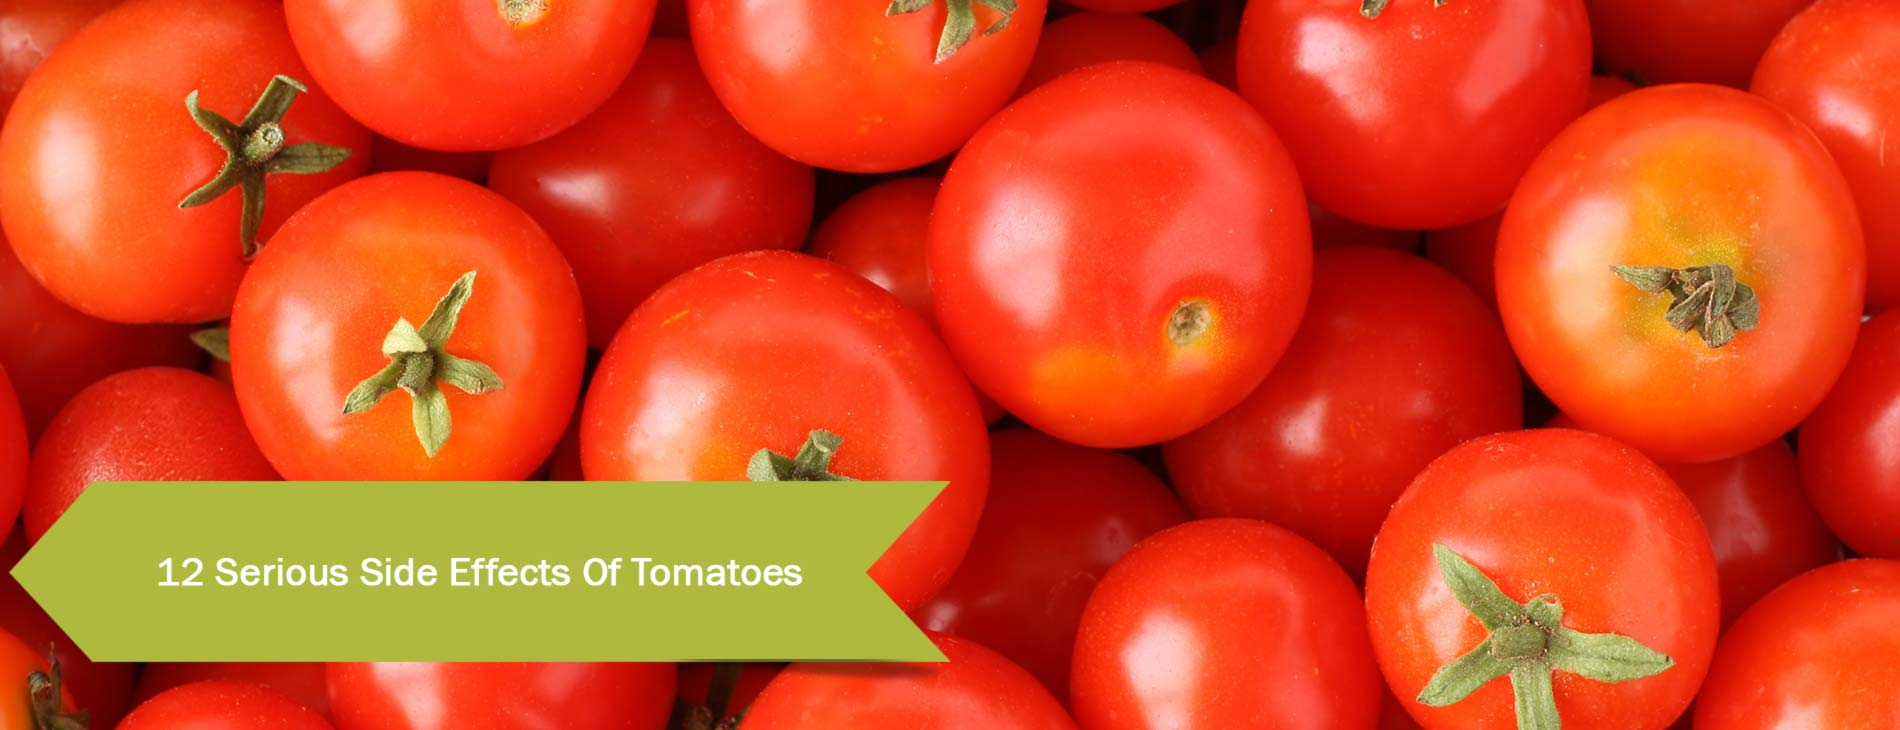 12-Serious-Side-Effects-Of-Tomatoes